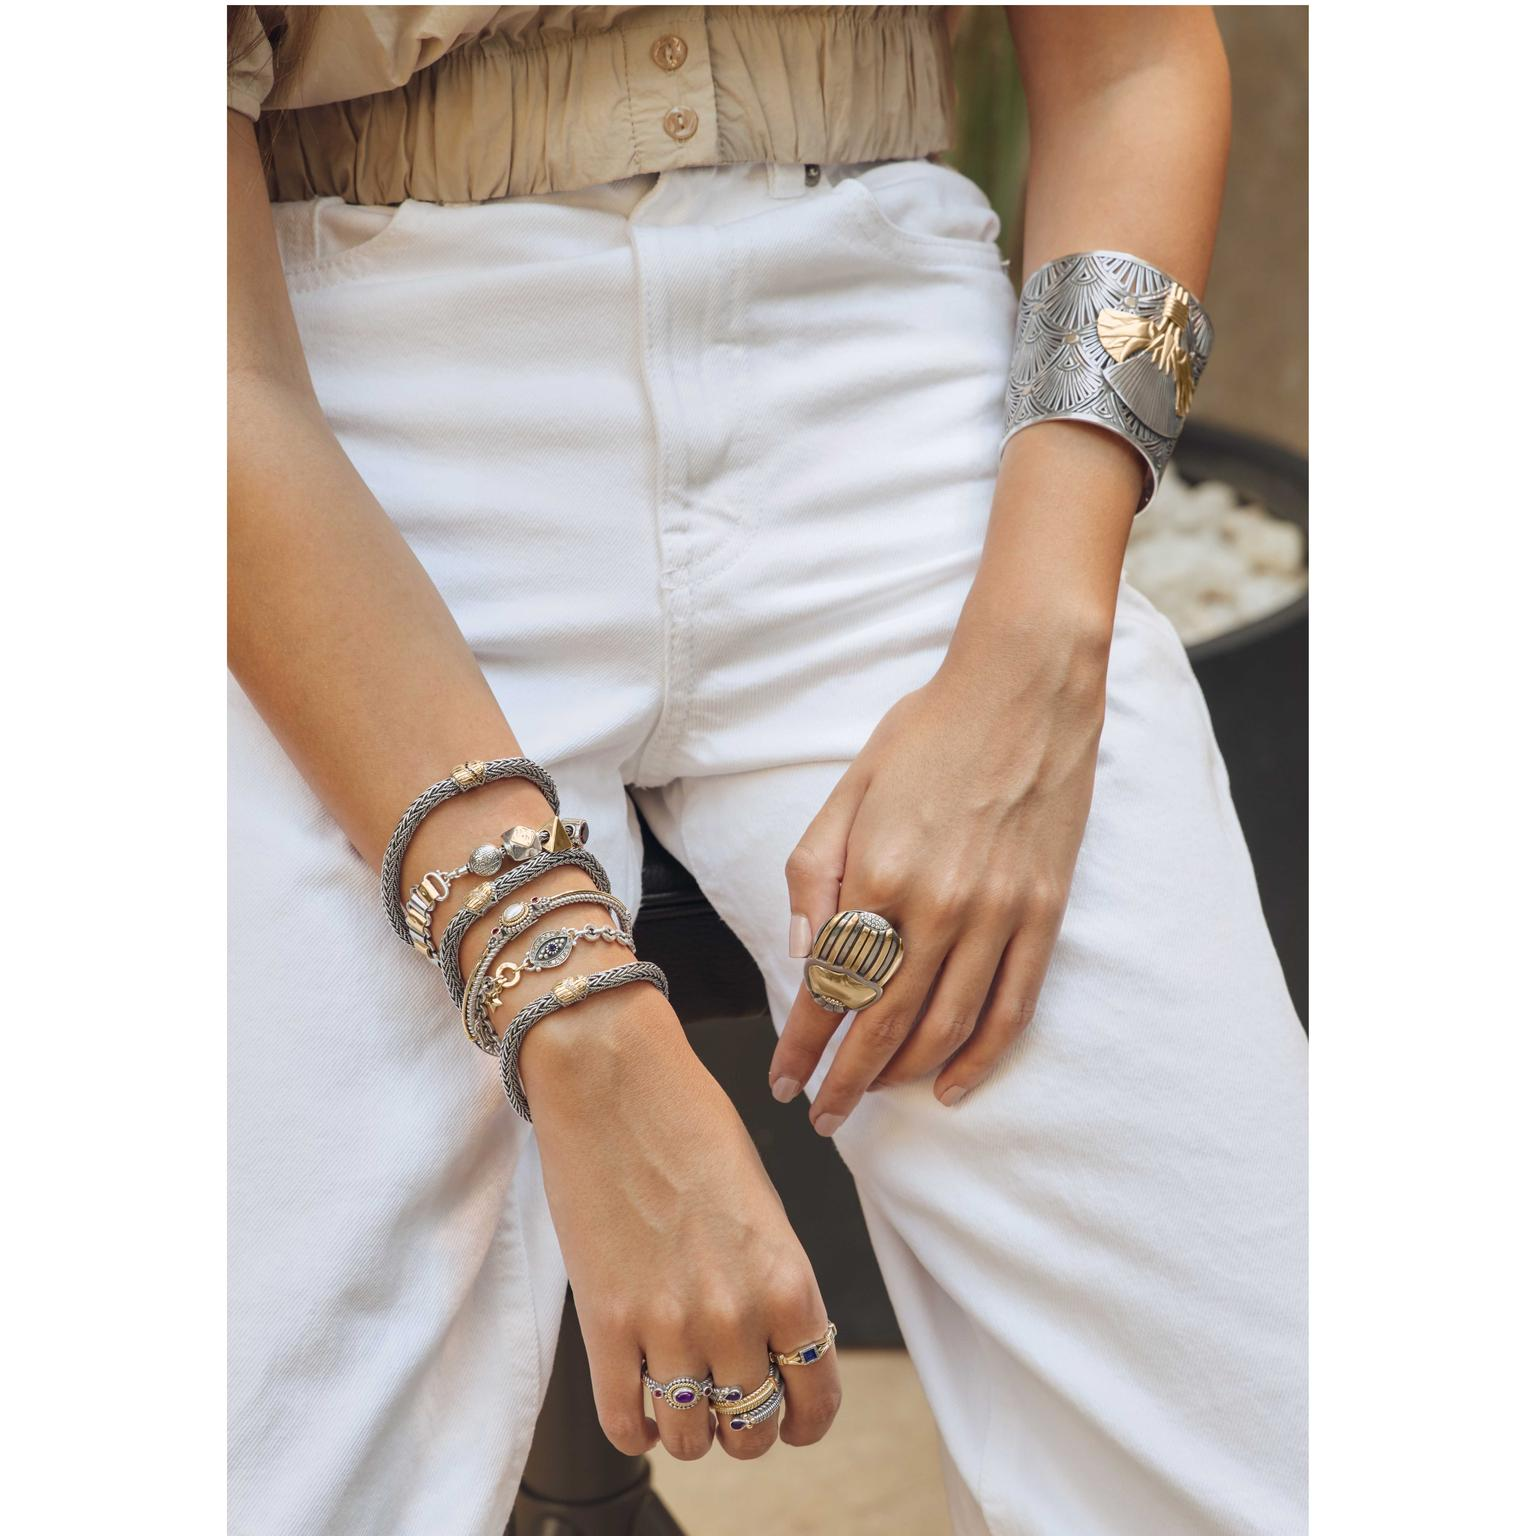 Pharaonic Revival Bracelets and Rings Stack